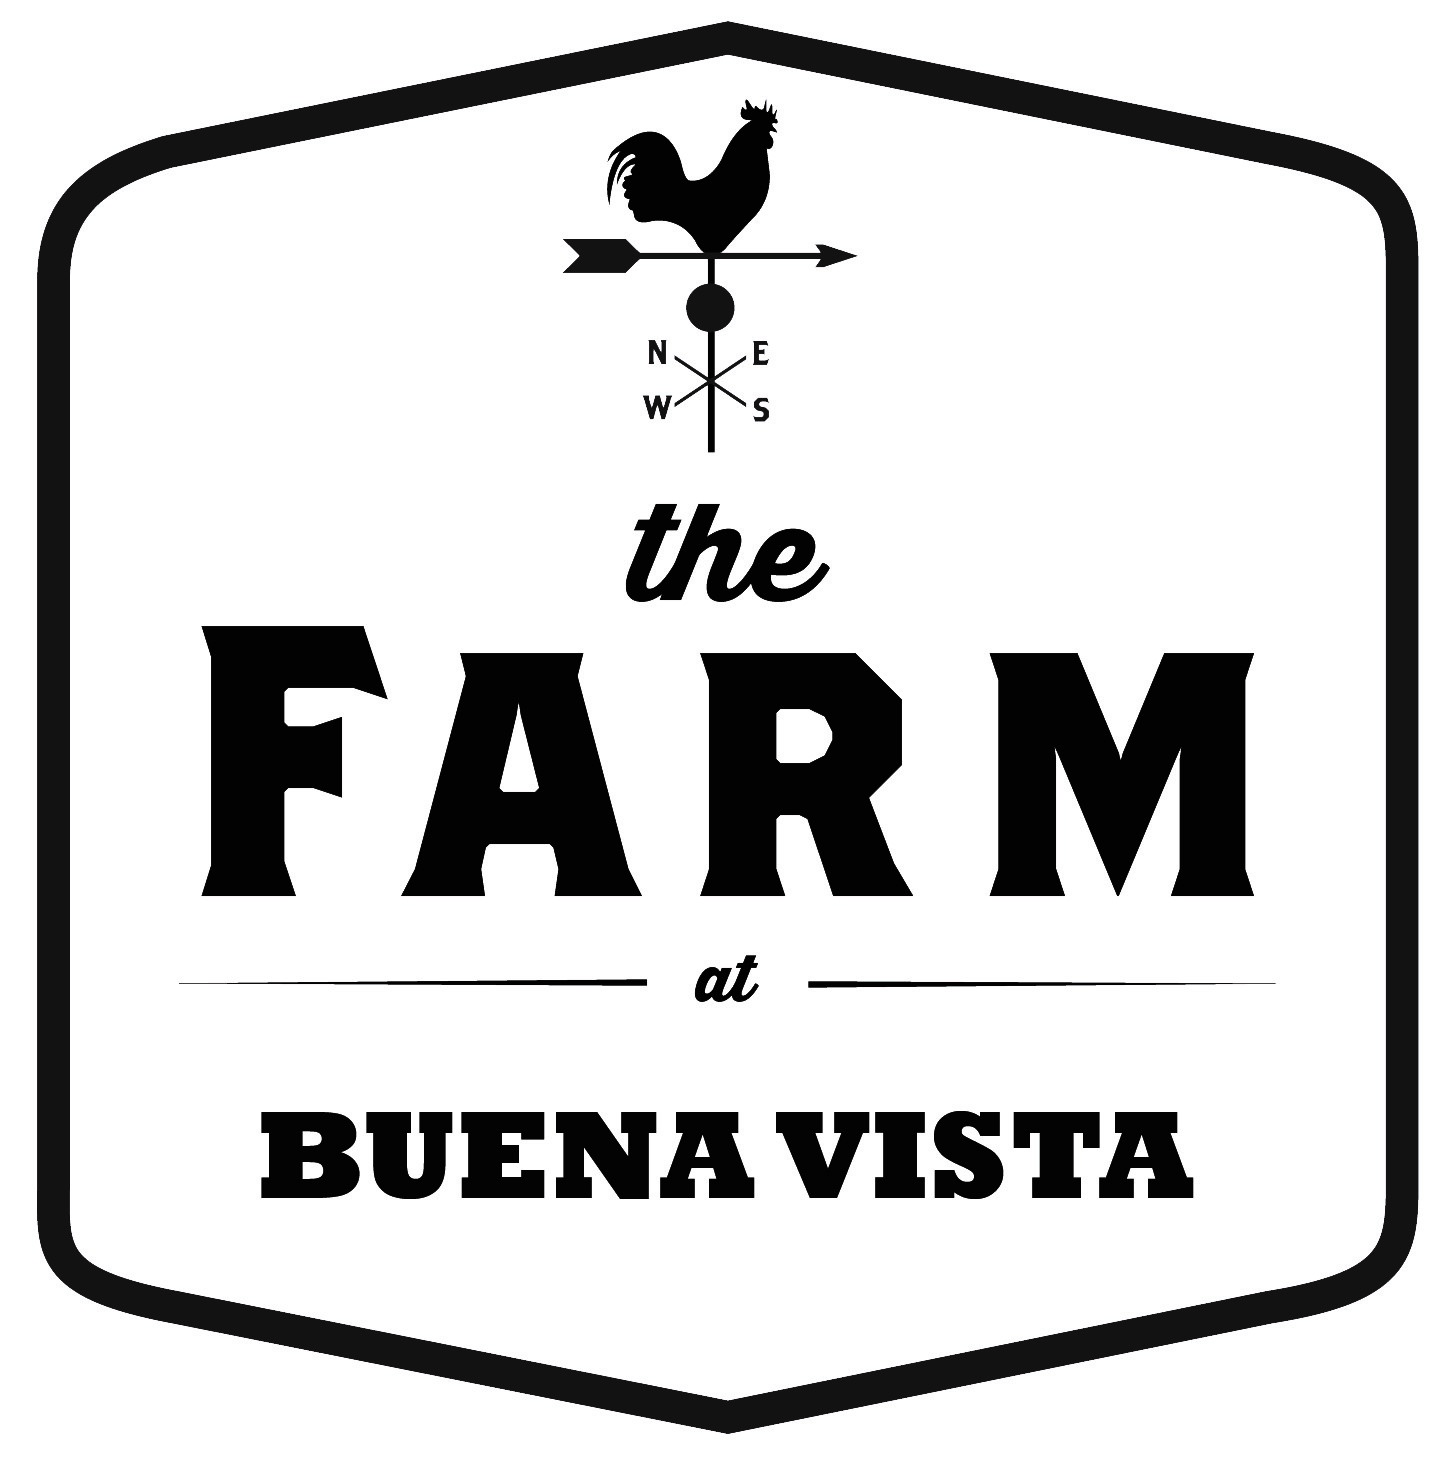 THE FARM LOGO.jpg